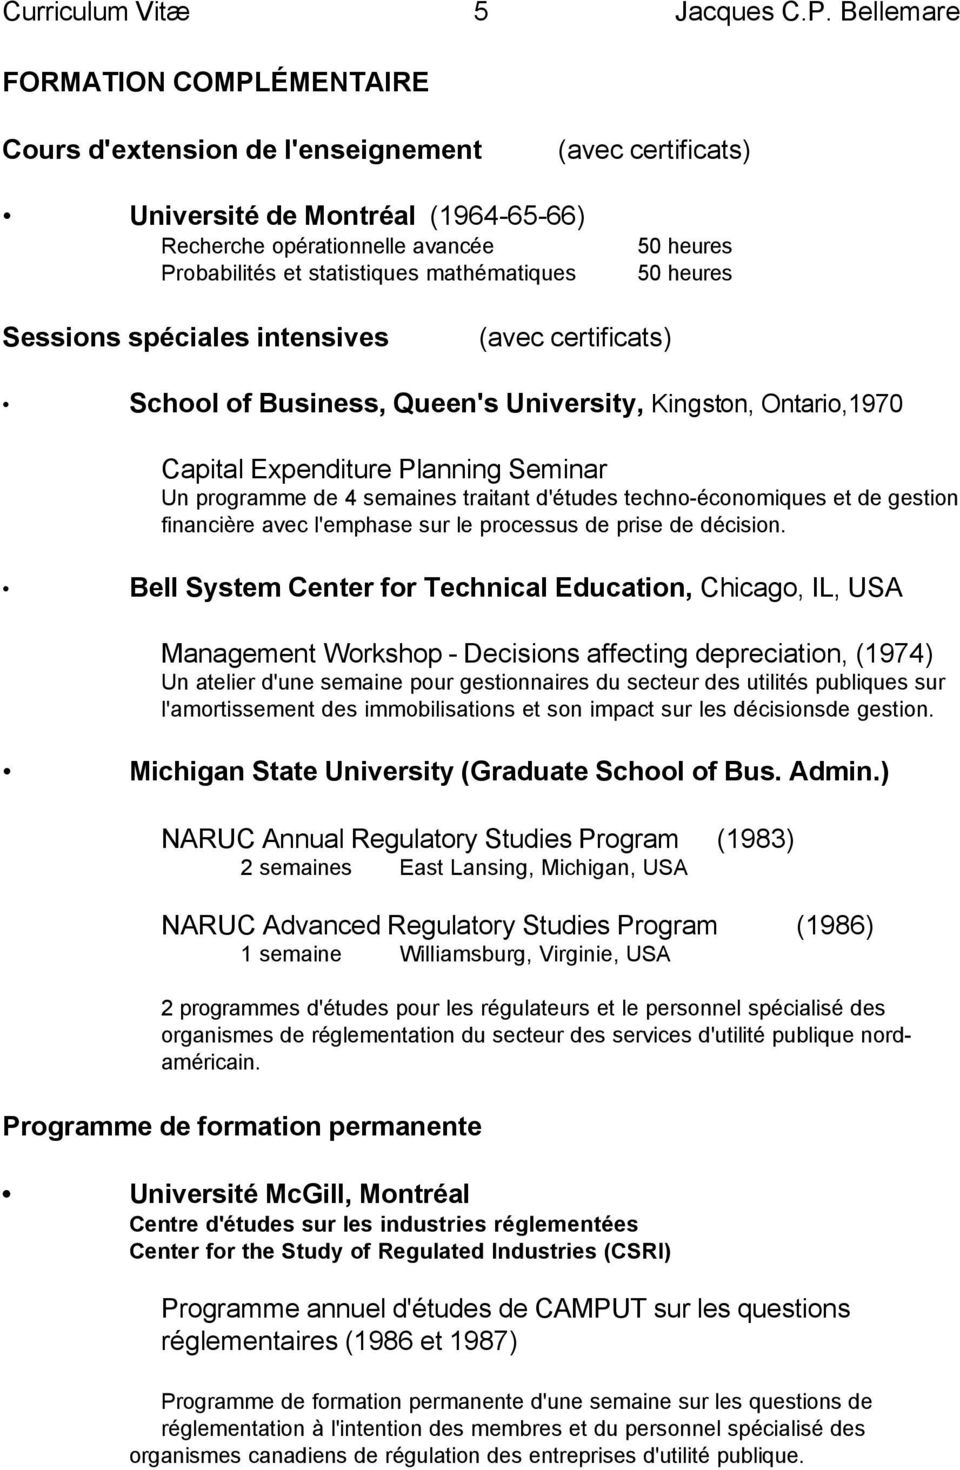 mathématiques 50 heures 50 heures Sessions spéciales intensives (avec certificats) School of Business, Queen's University, Kingston, Ontario,1970 Capital Expenditure Planning Seminar Un programme de